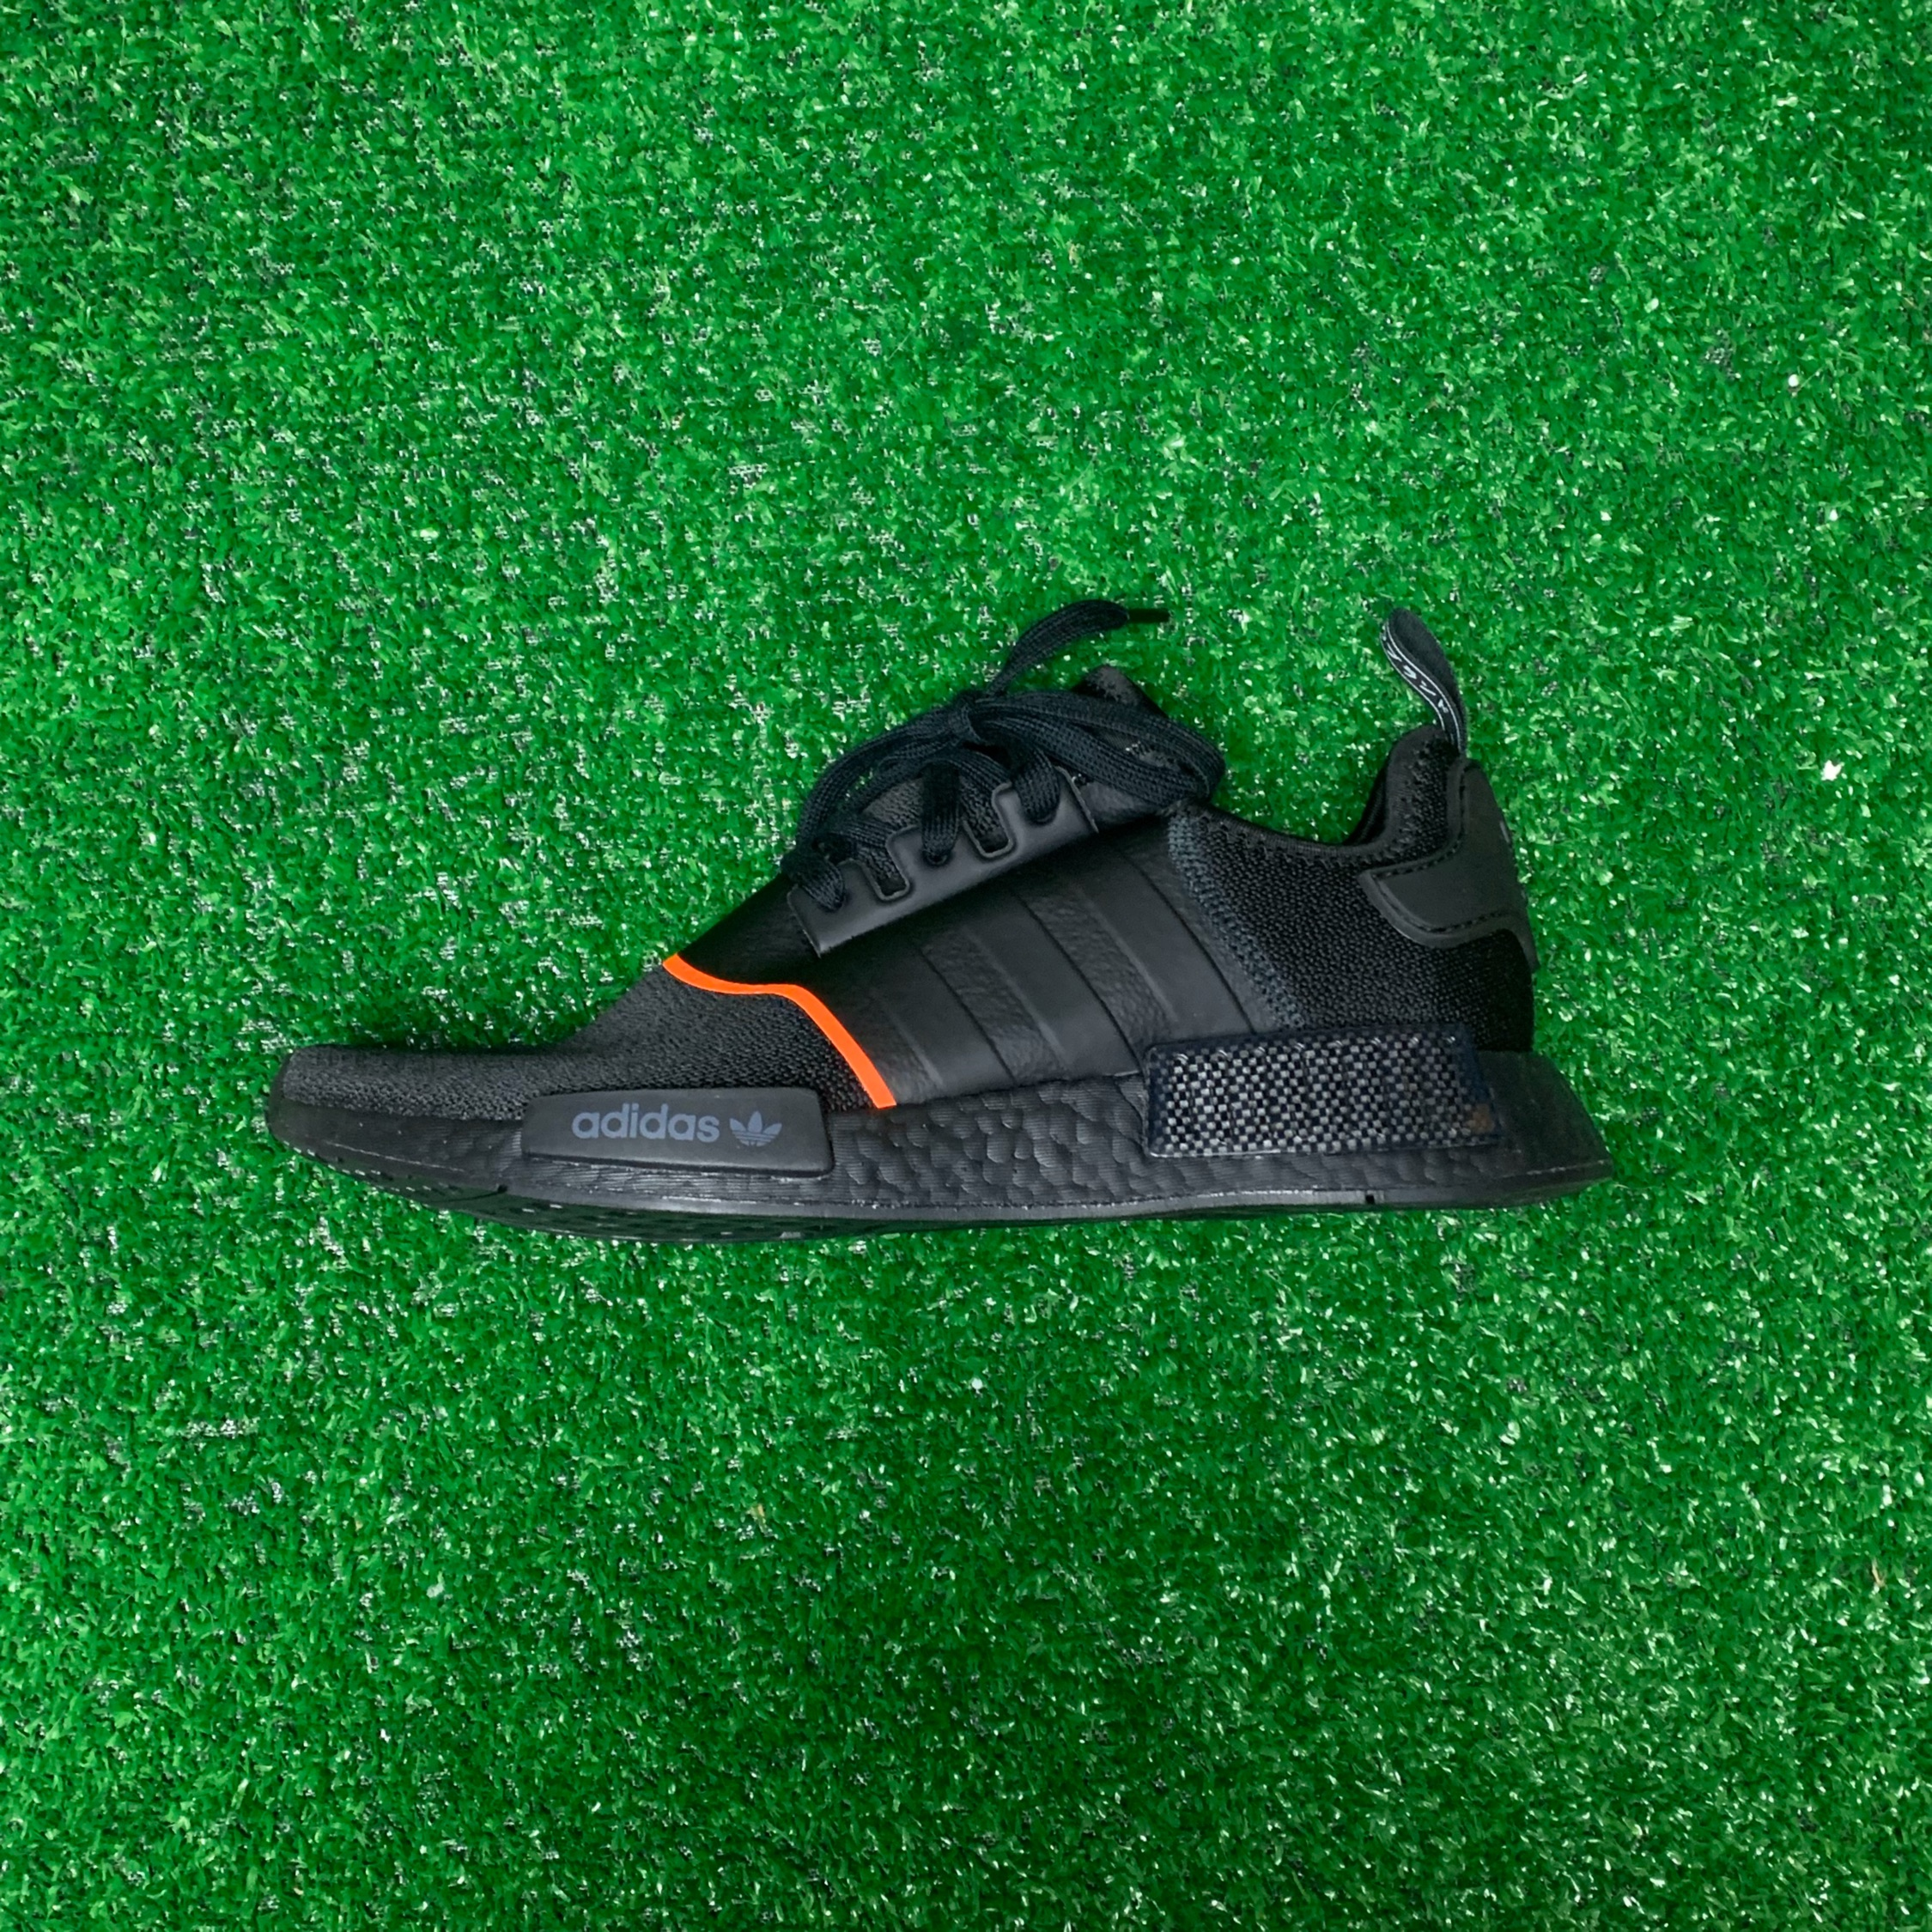 adidas NMD R1 Core Black Solar Red